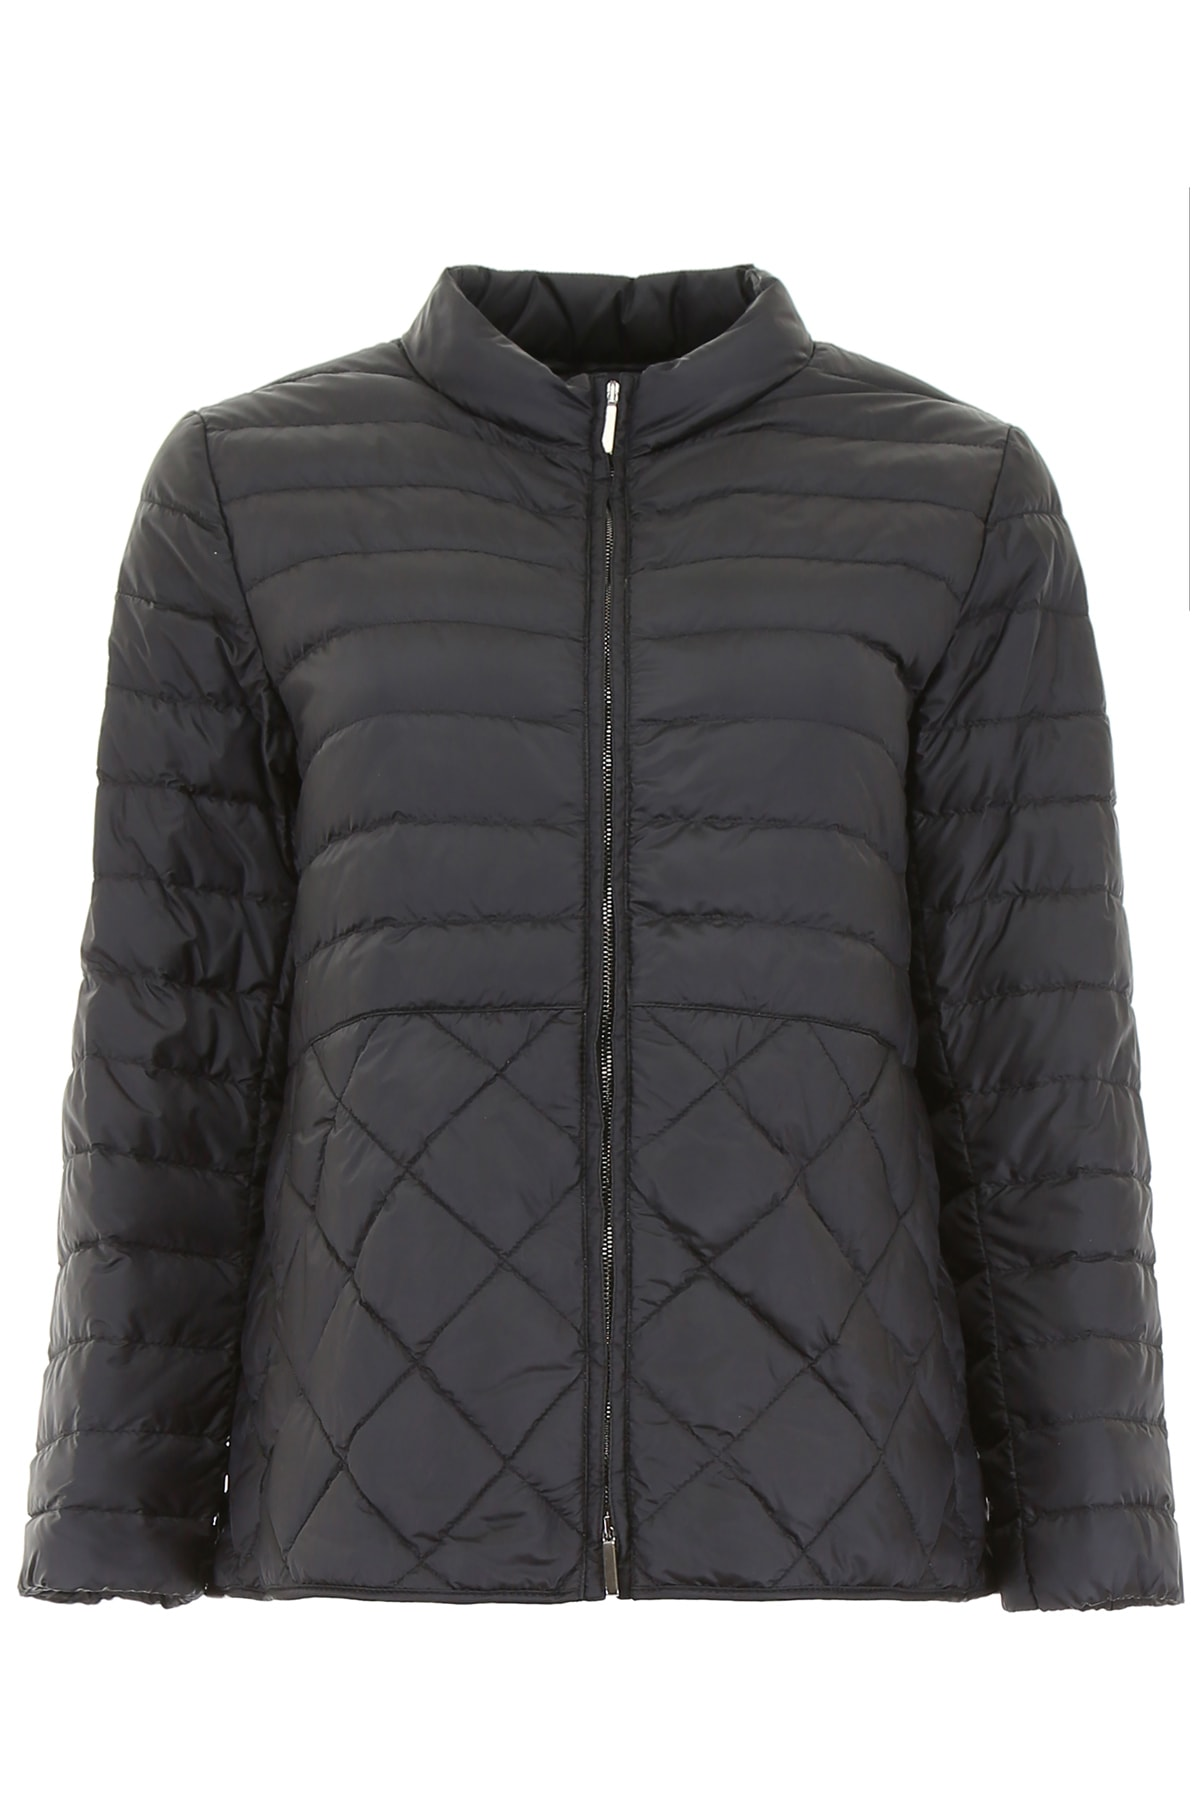 S Max Mara Here is The Cube Etret Quilted Jacket